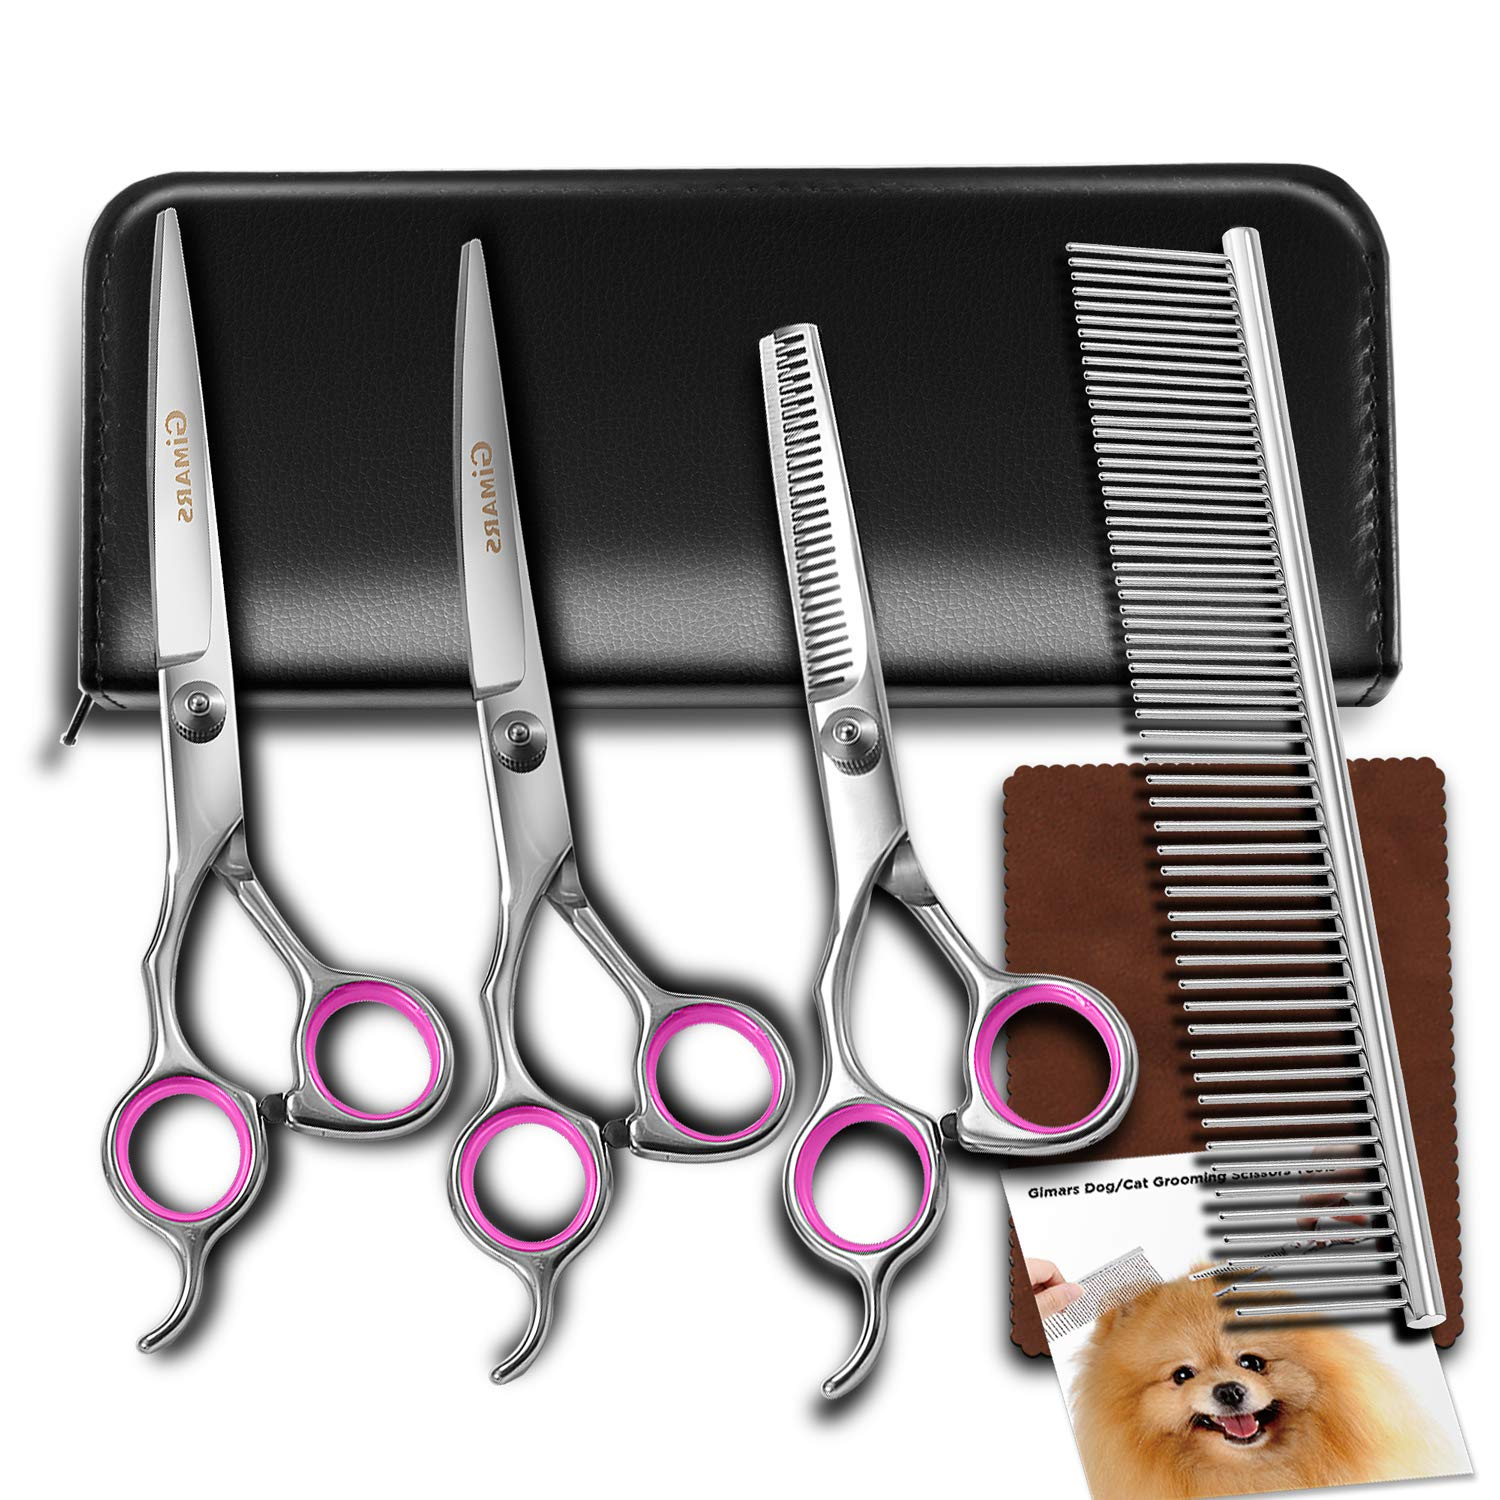 Gimars Heavy Duty Titanium Coated Stainless Steel Pet Groom